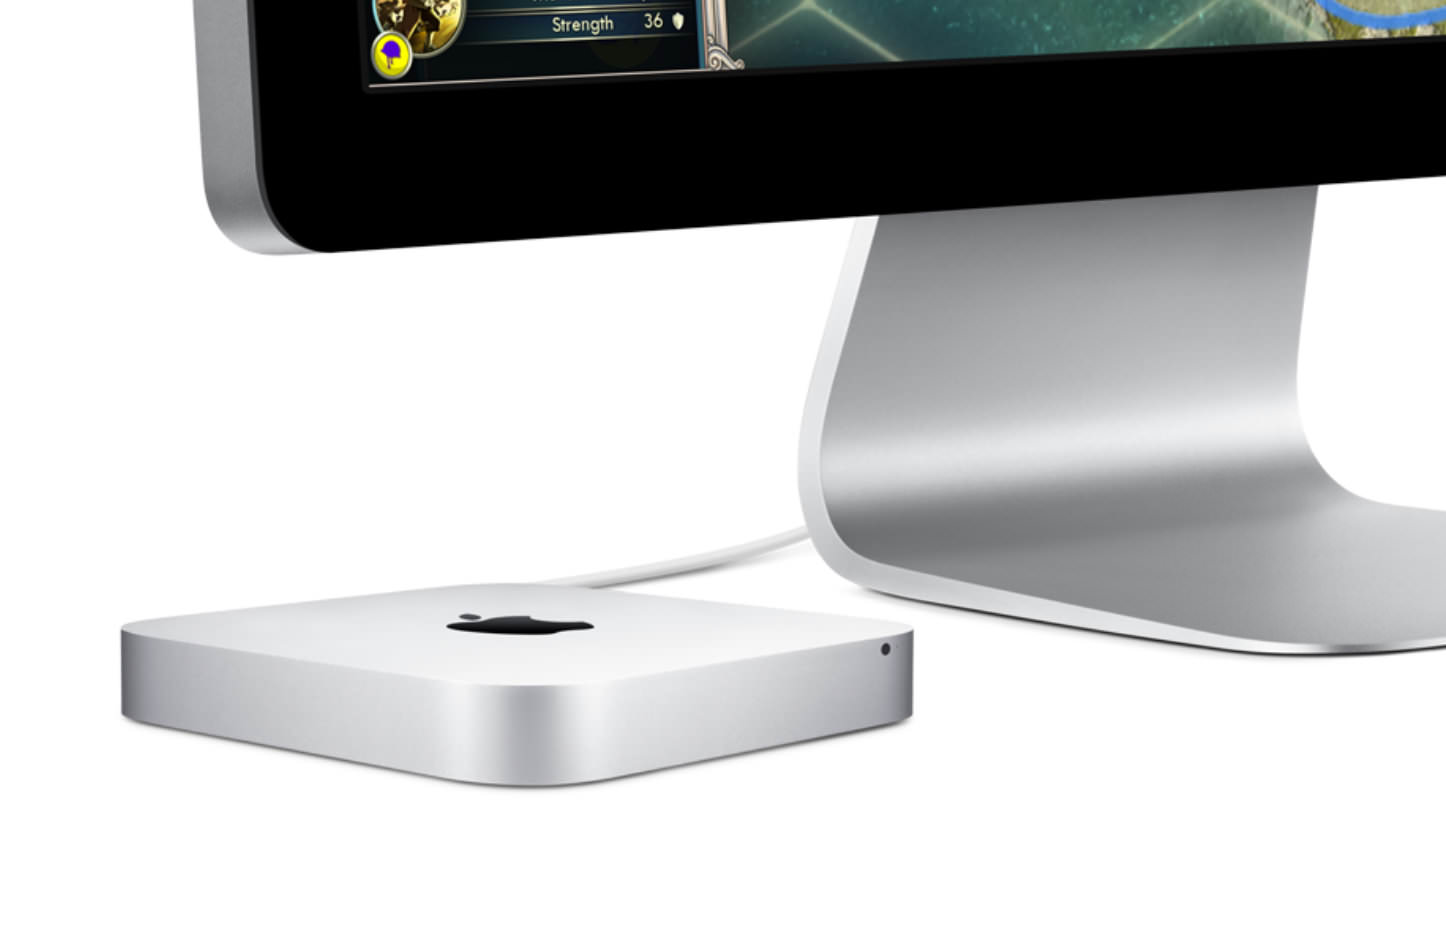 Mac mini New Model